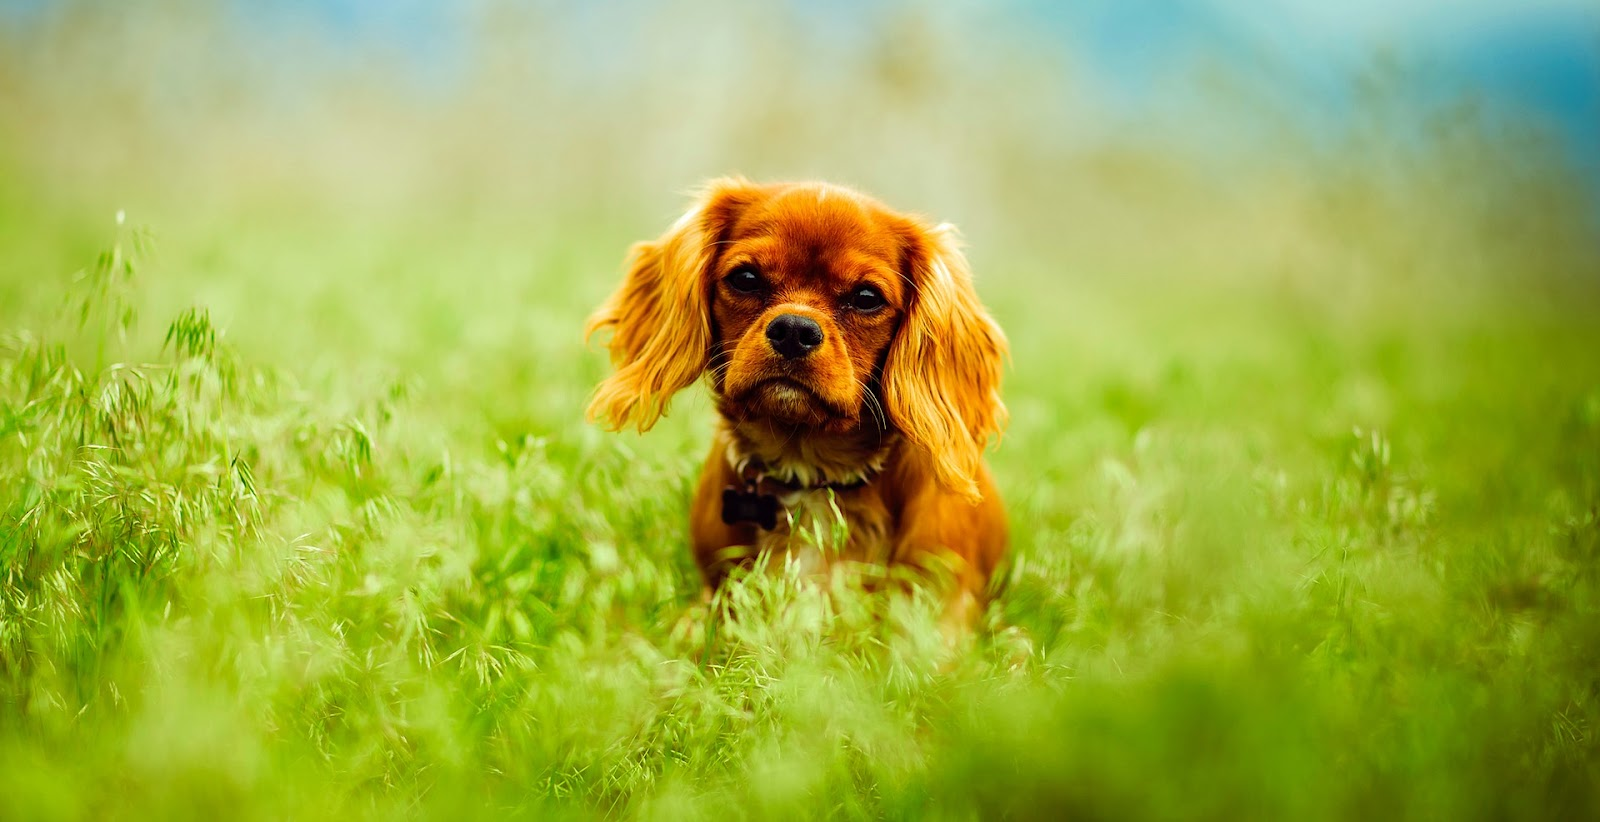 Red furry dog playing in high green grass